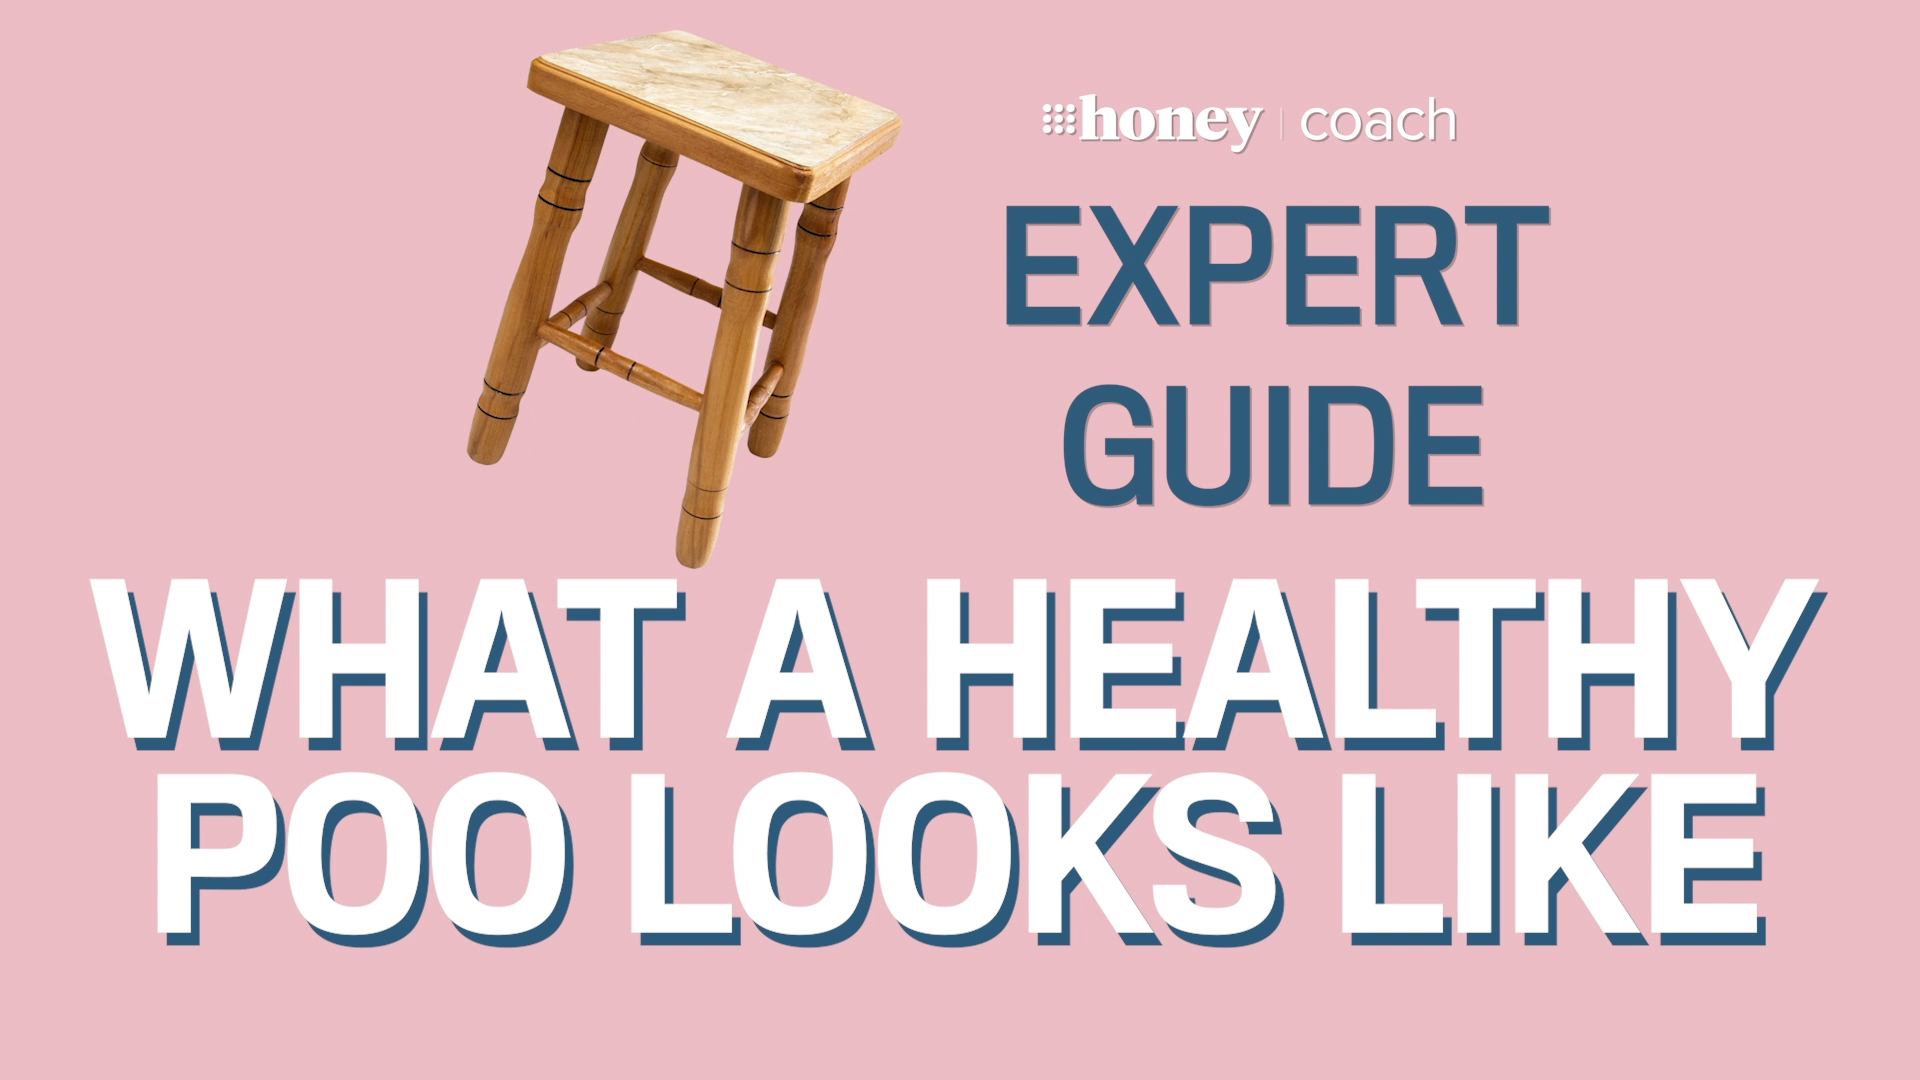 What a healthy poo looks like | Expert Guide